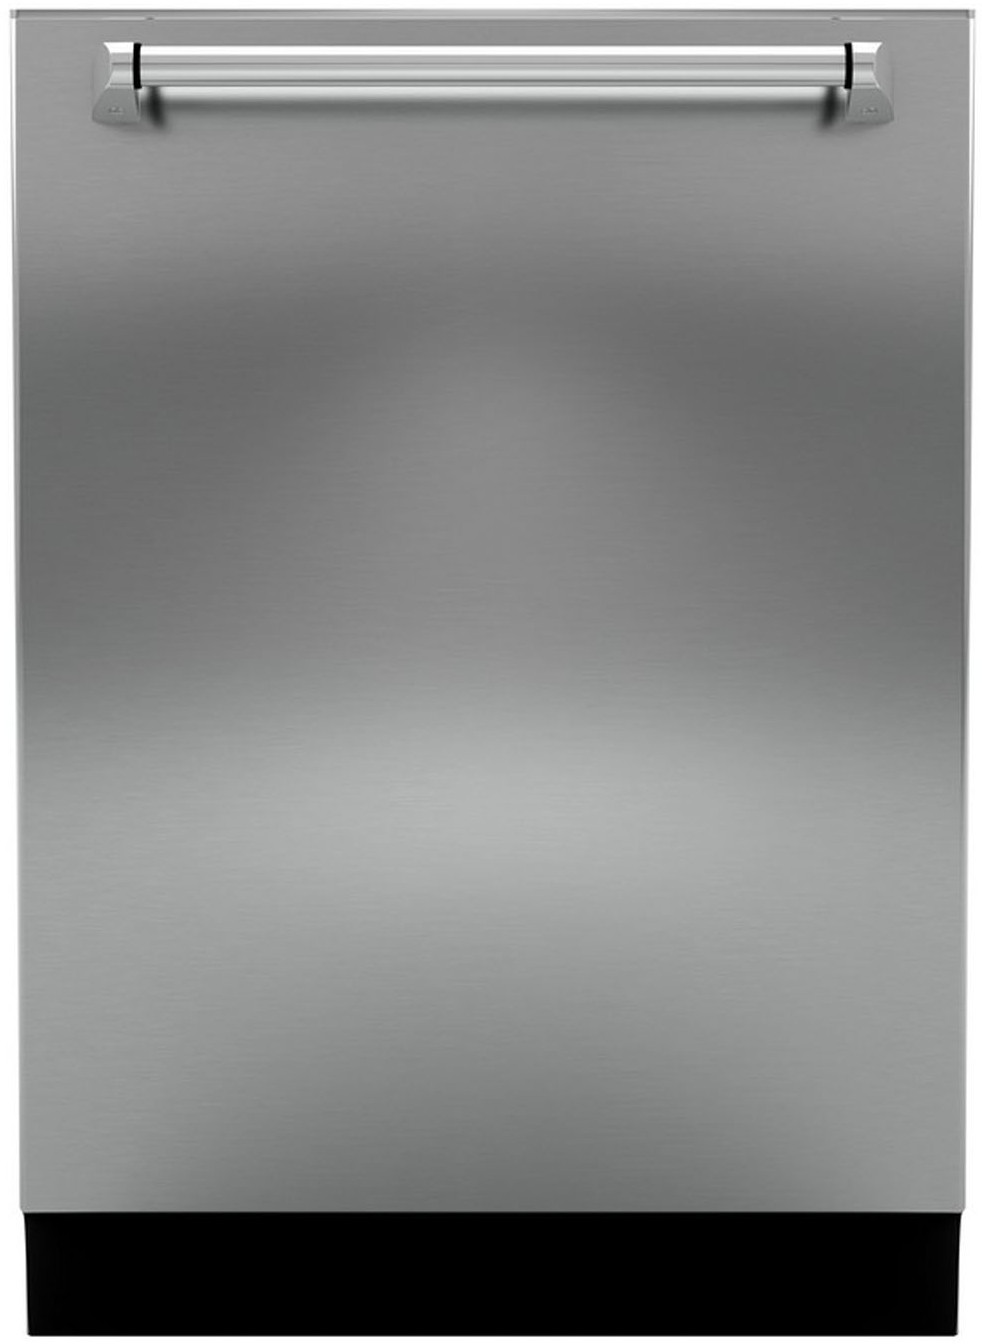 Bertazzoni Dishwasher 24inch in Stainless Steel color showcased by Corbeil Electro Store